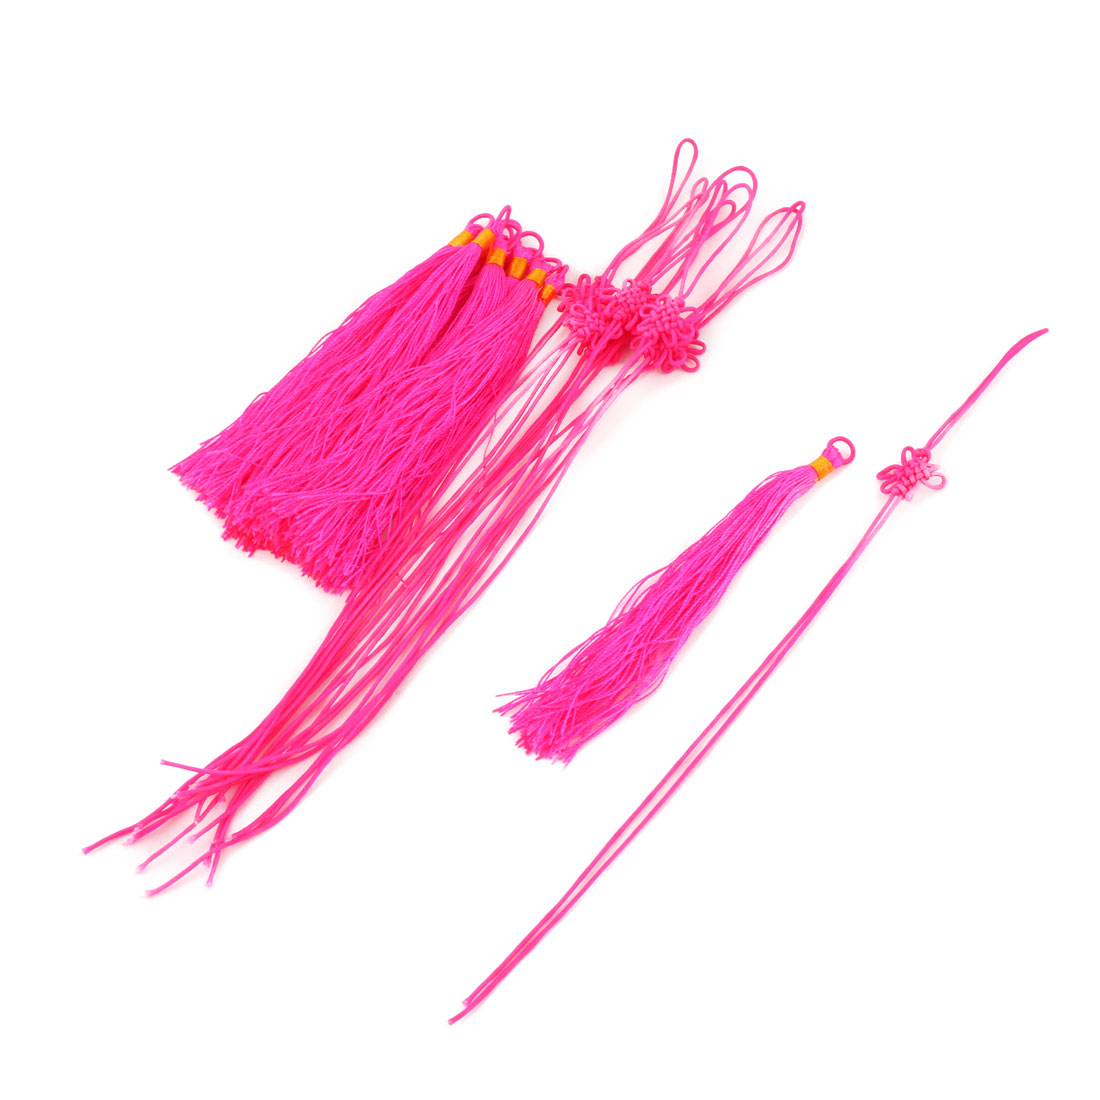 Home Car Nylon Handmade Craft Tassel Hanging Decor Chinese Knot Fuchsia 10 Sets - image 3 of 3